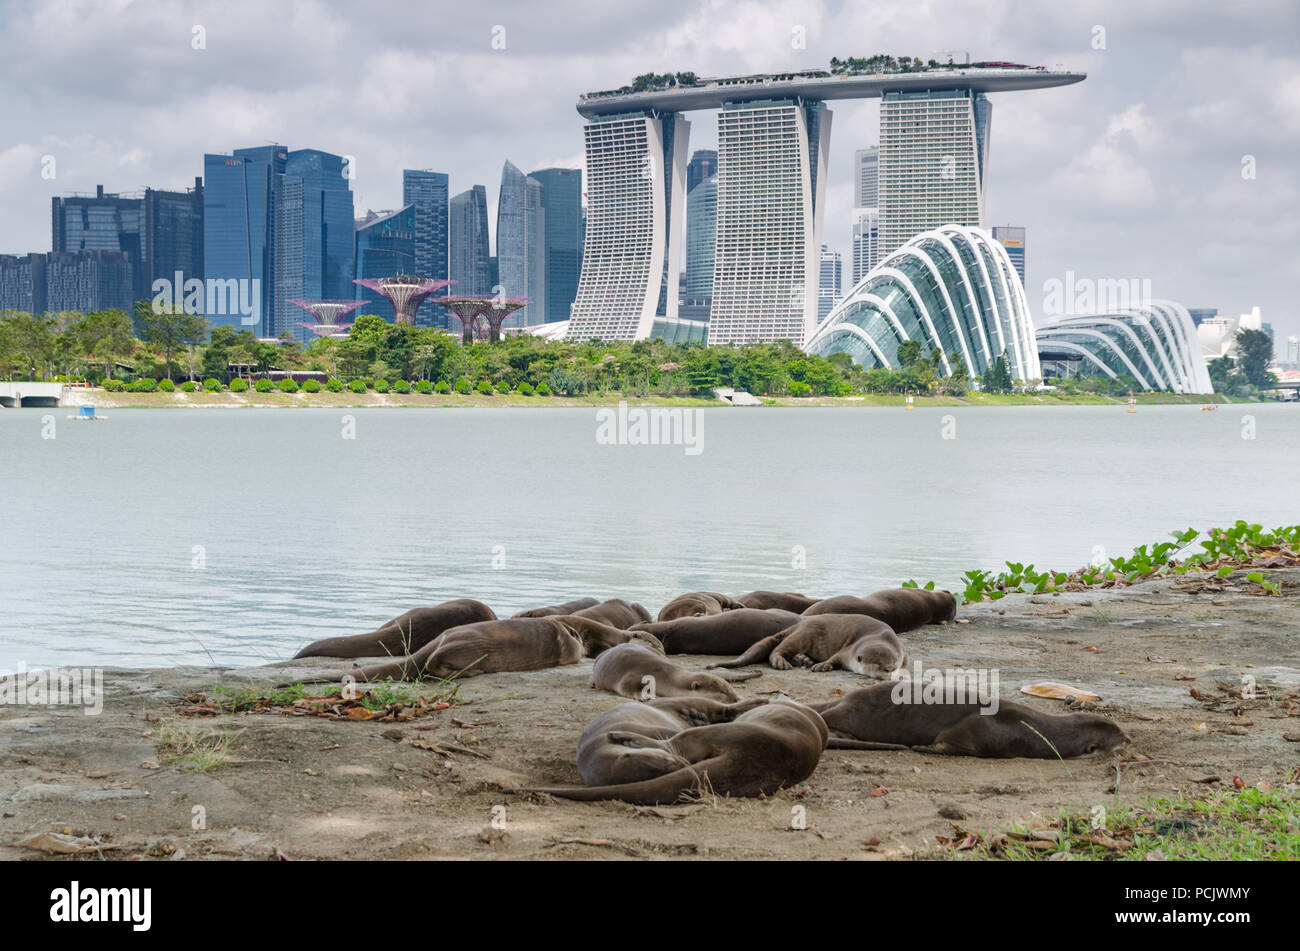 Family of otters spotted taking afternoon nap near Garden By The Bay East Garden. Otters progressively sighted in highly urbanized area. - Stock Image